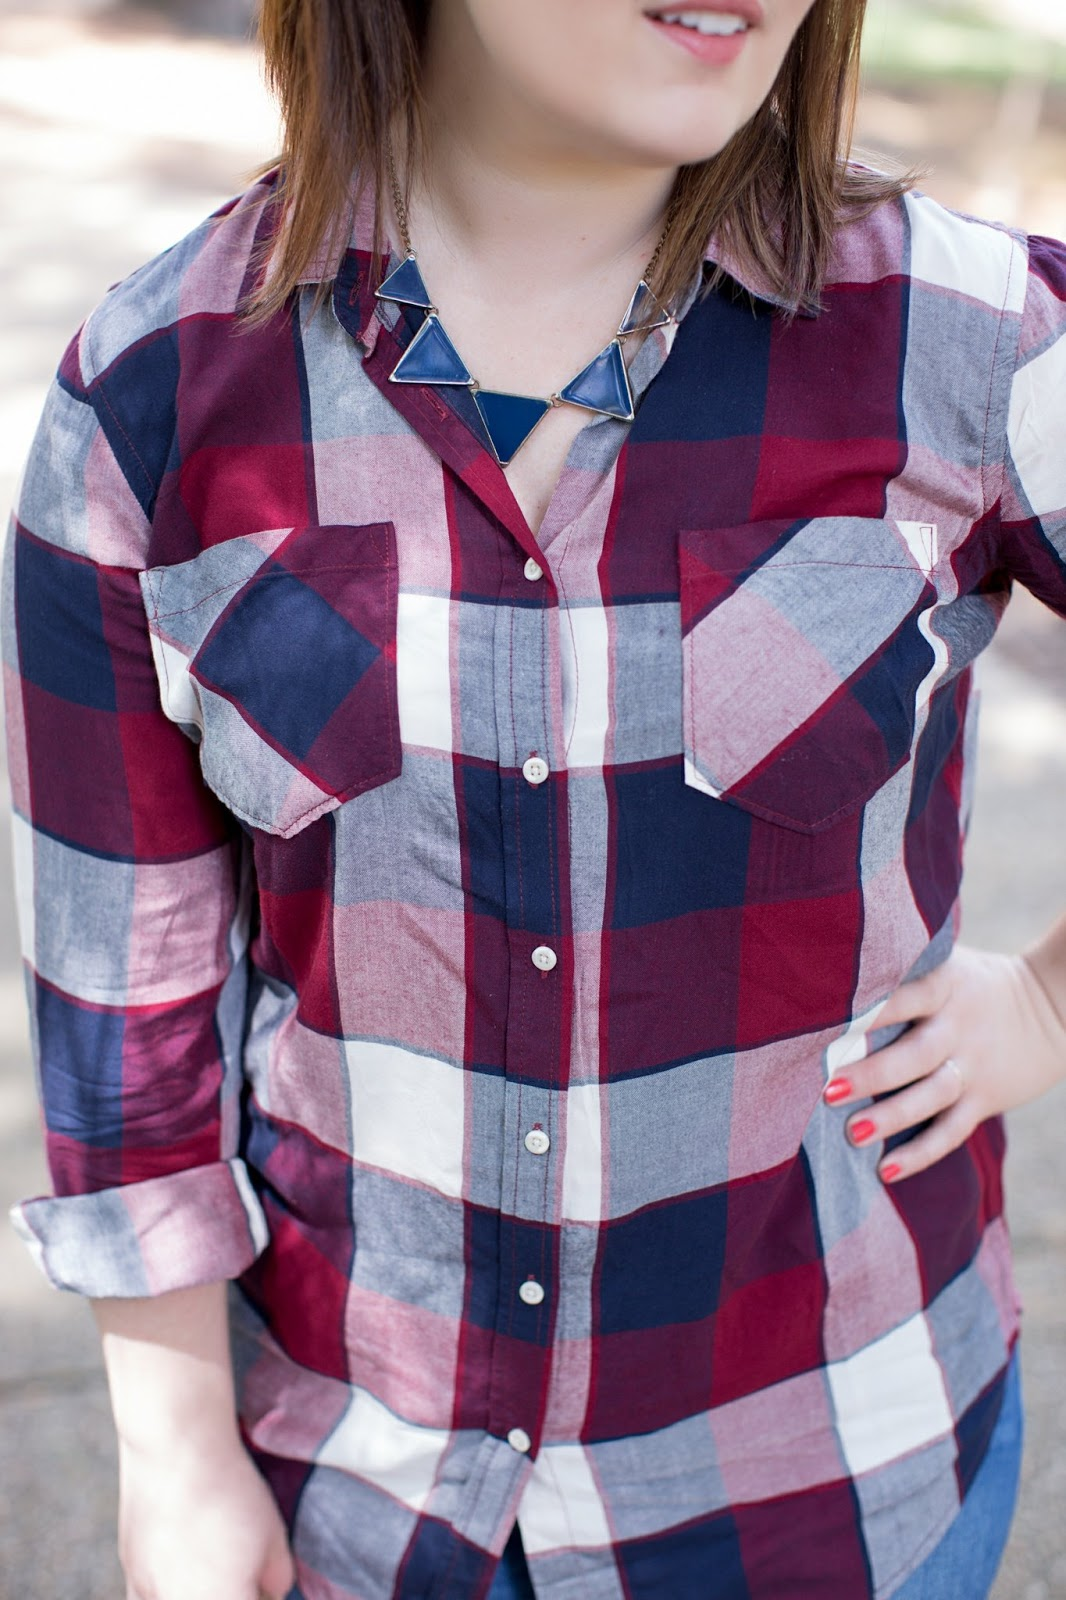 Rebecca Lately Merona Favorite Plaid Shirt Old Navy Rockstar Seavees Monterey Madewell Kensington Satchel